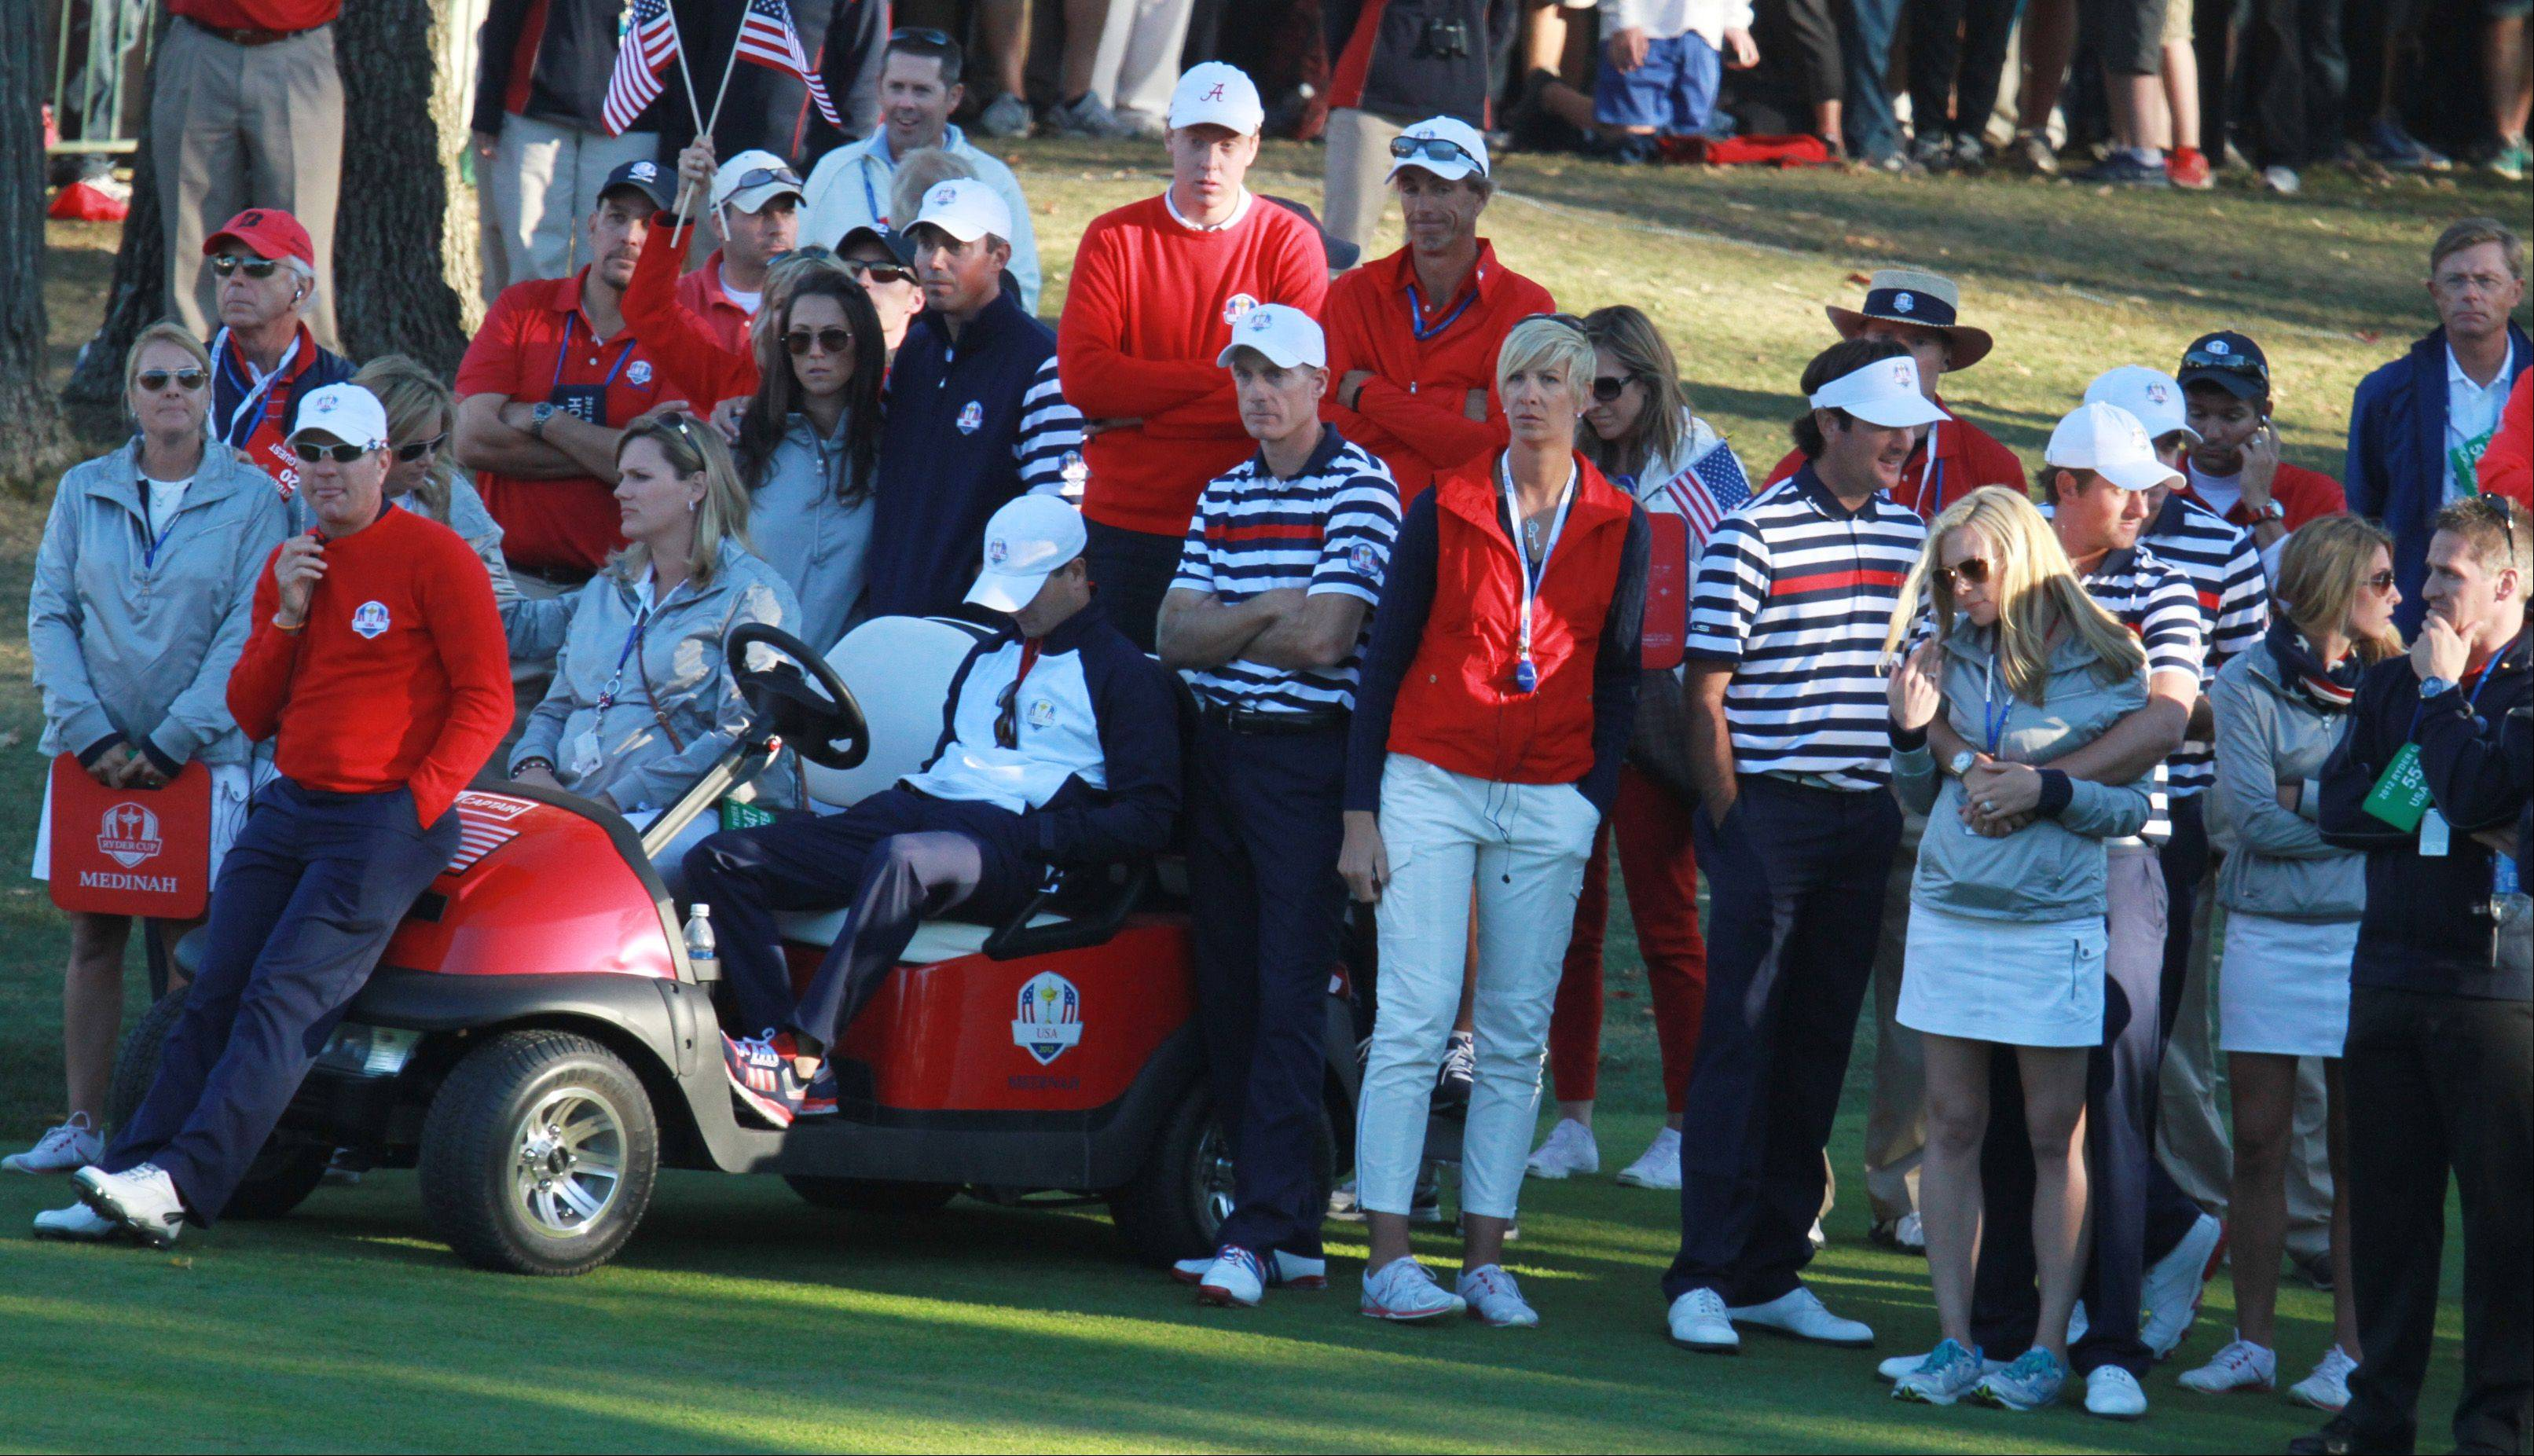 US team members and their families watch as the European team comes from behind and wins on 18.